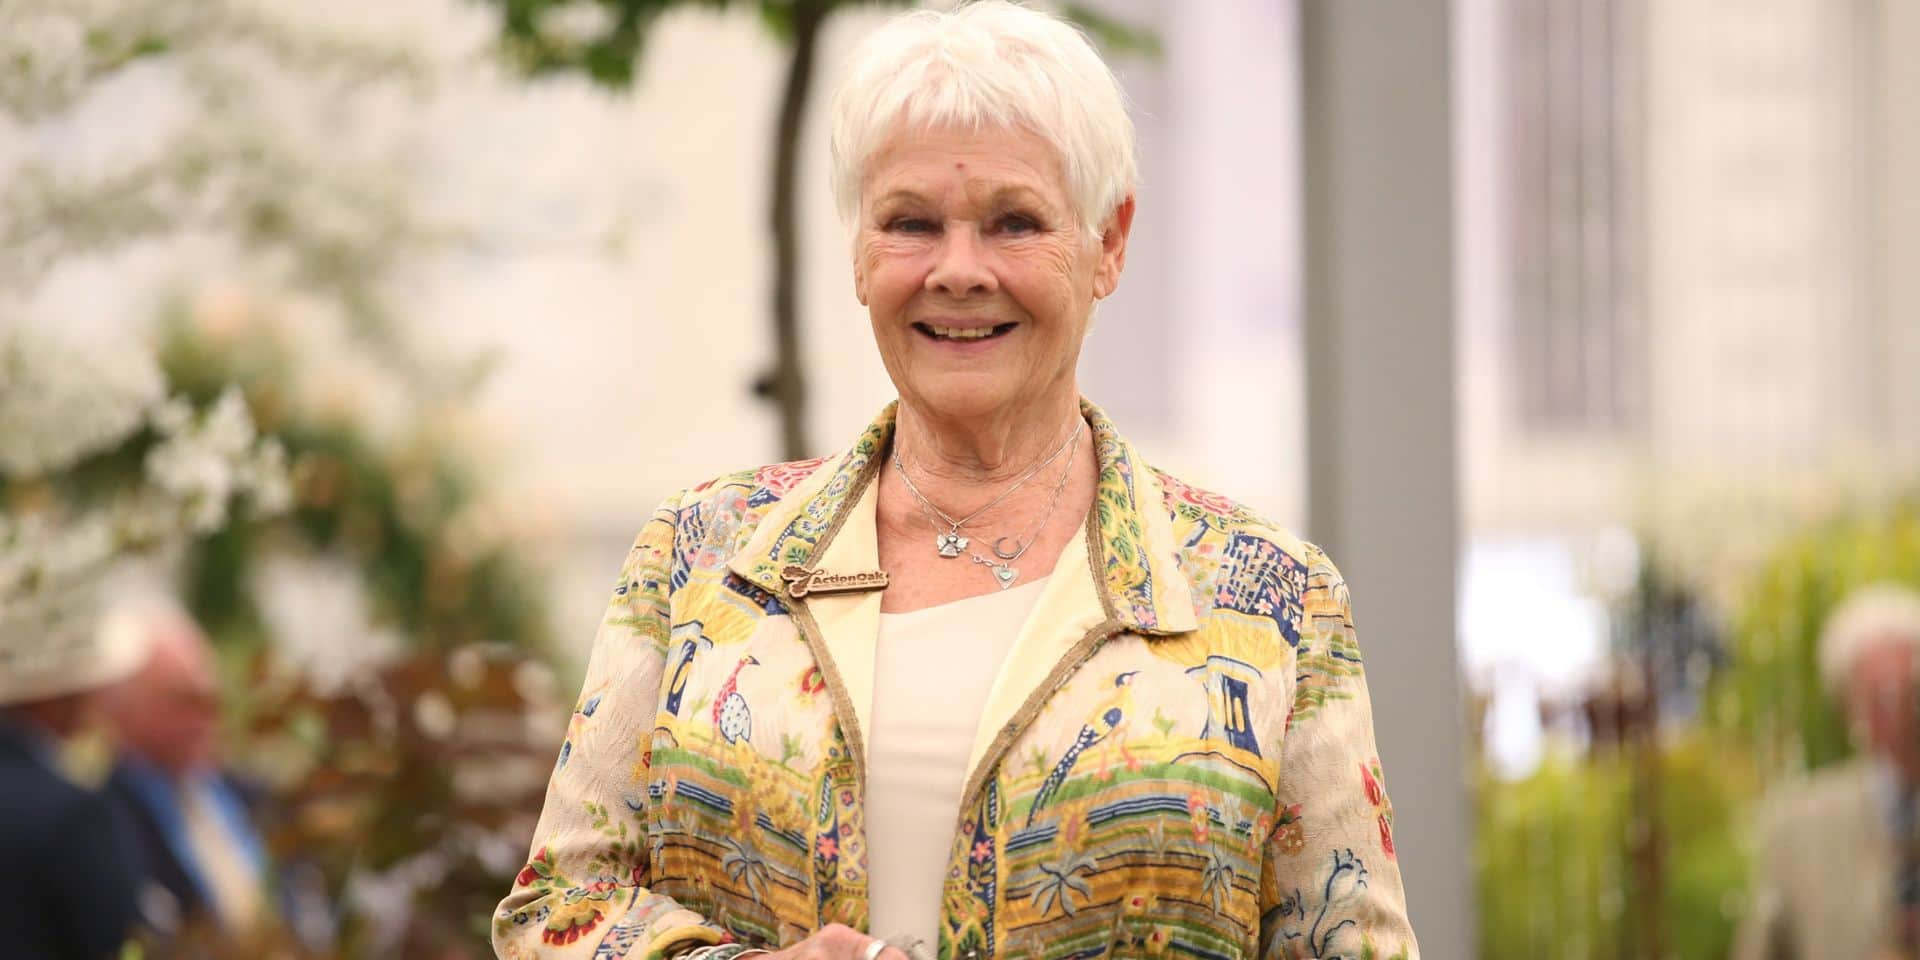 Dame Judi Dench, 85 ans, fait la couverture du Vogue UK